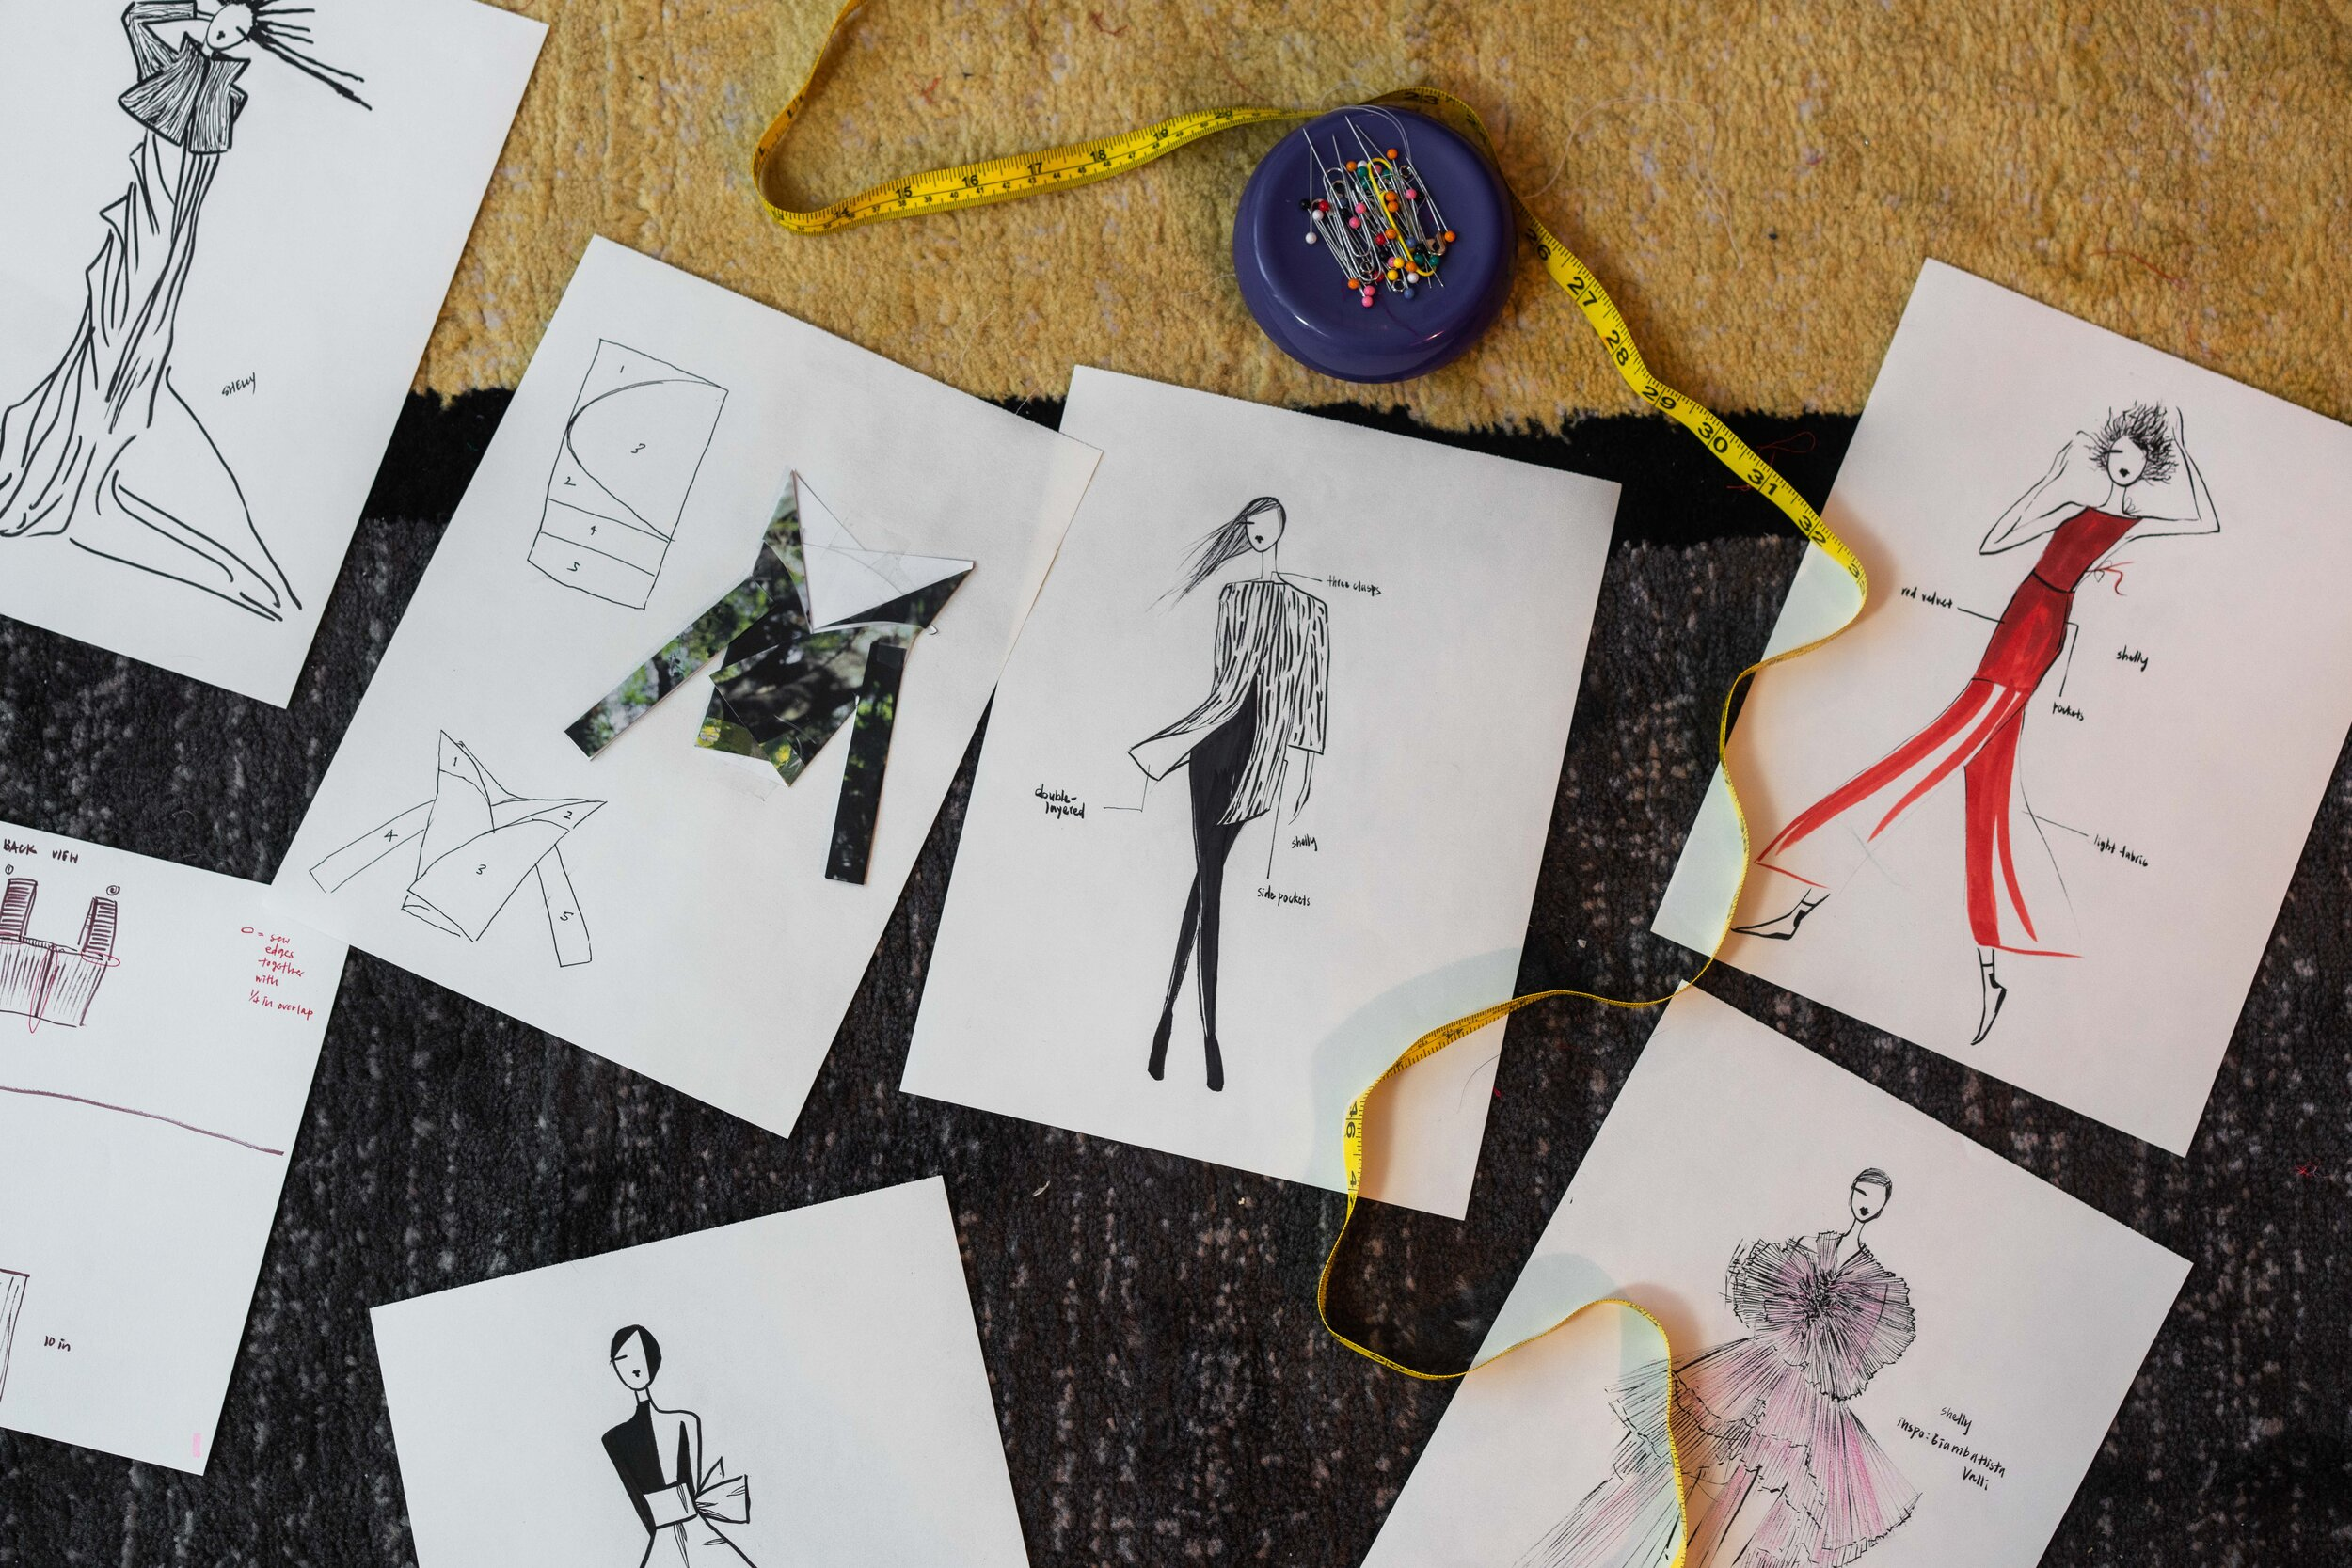 A series of Xu's sketches, including original designs and inspiration, as well as some of the patterns and paper-folding technique she uses in planning her designs.